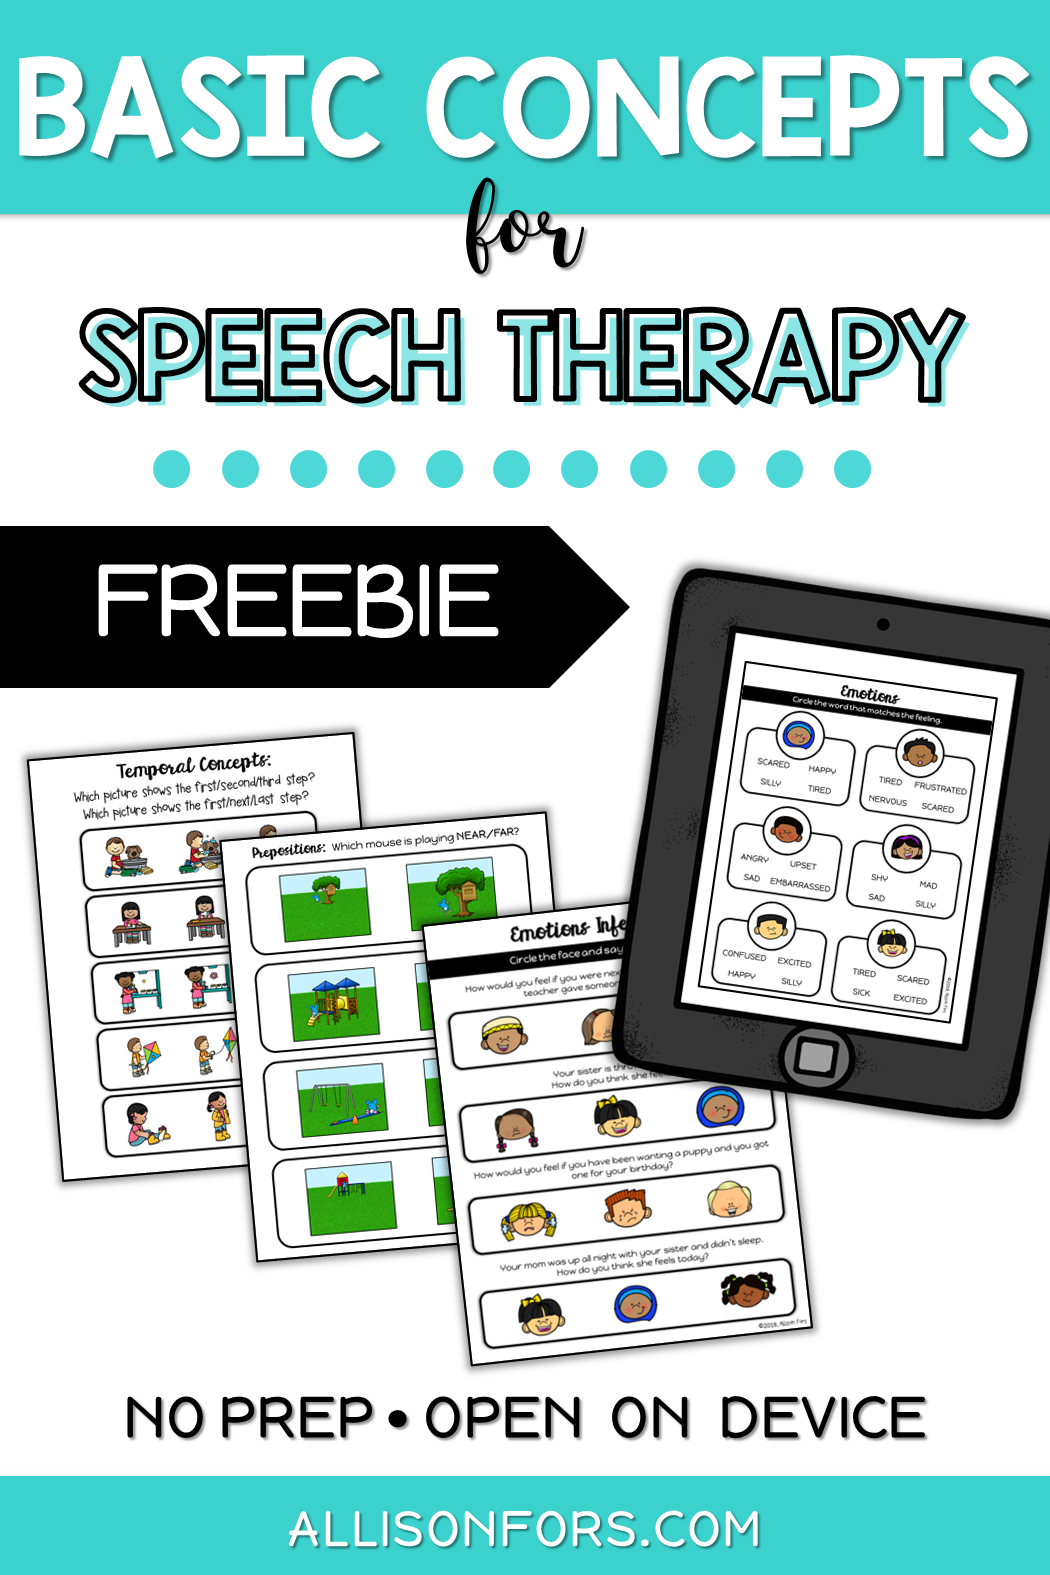 Basic Concepts Speech Therapy Free Sampler In